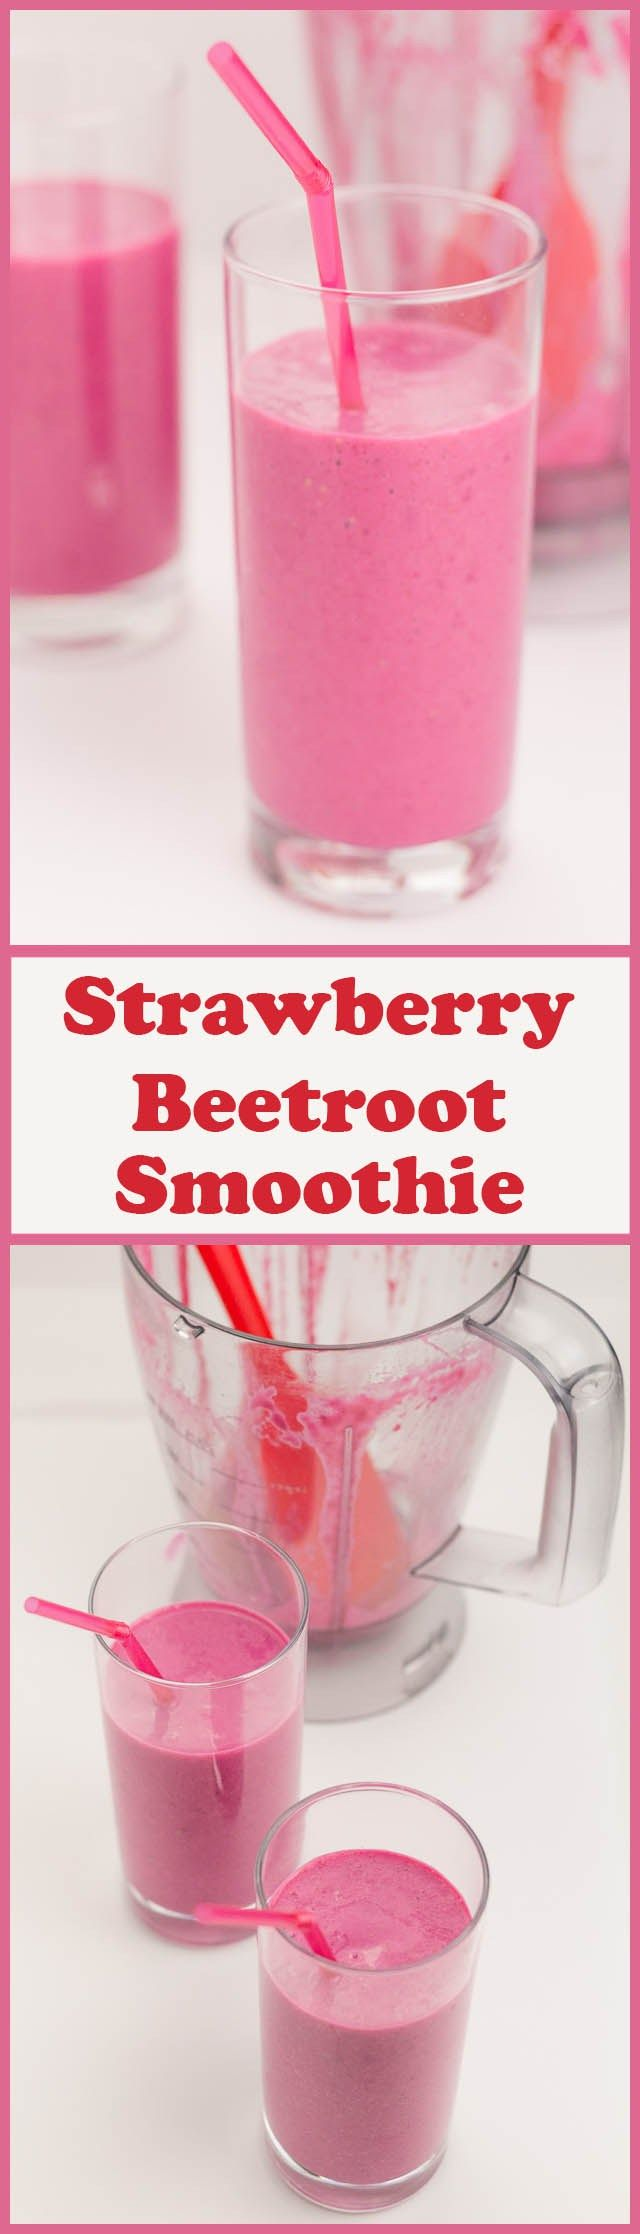 This quick healthy strawberry beetroot smoothie is made in just minutes from only three ingredients. Not only that, it packs all of your daily recommended vitamin C into one glass. Now how's that for a vitamin boost?